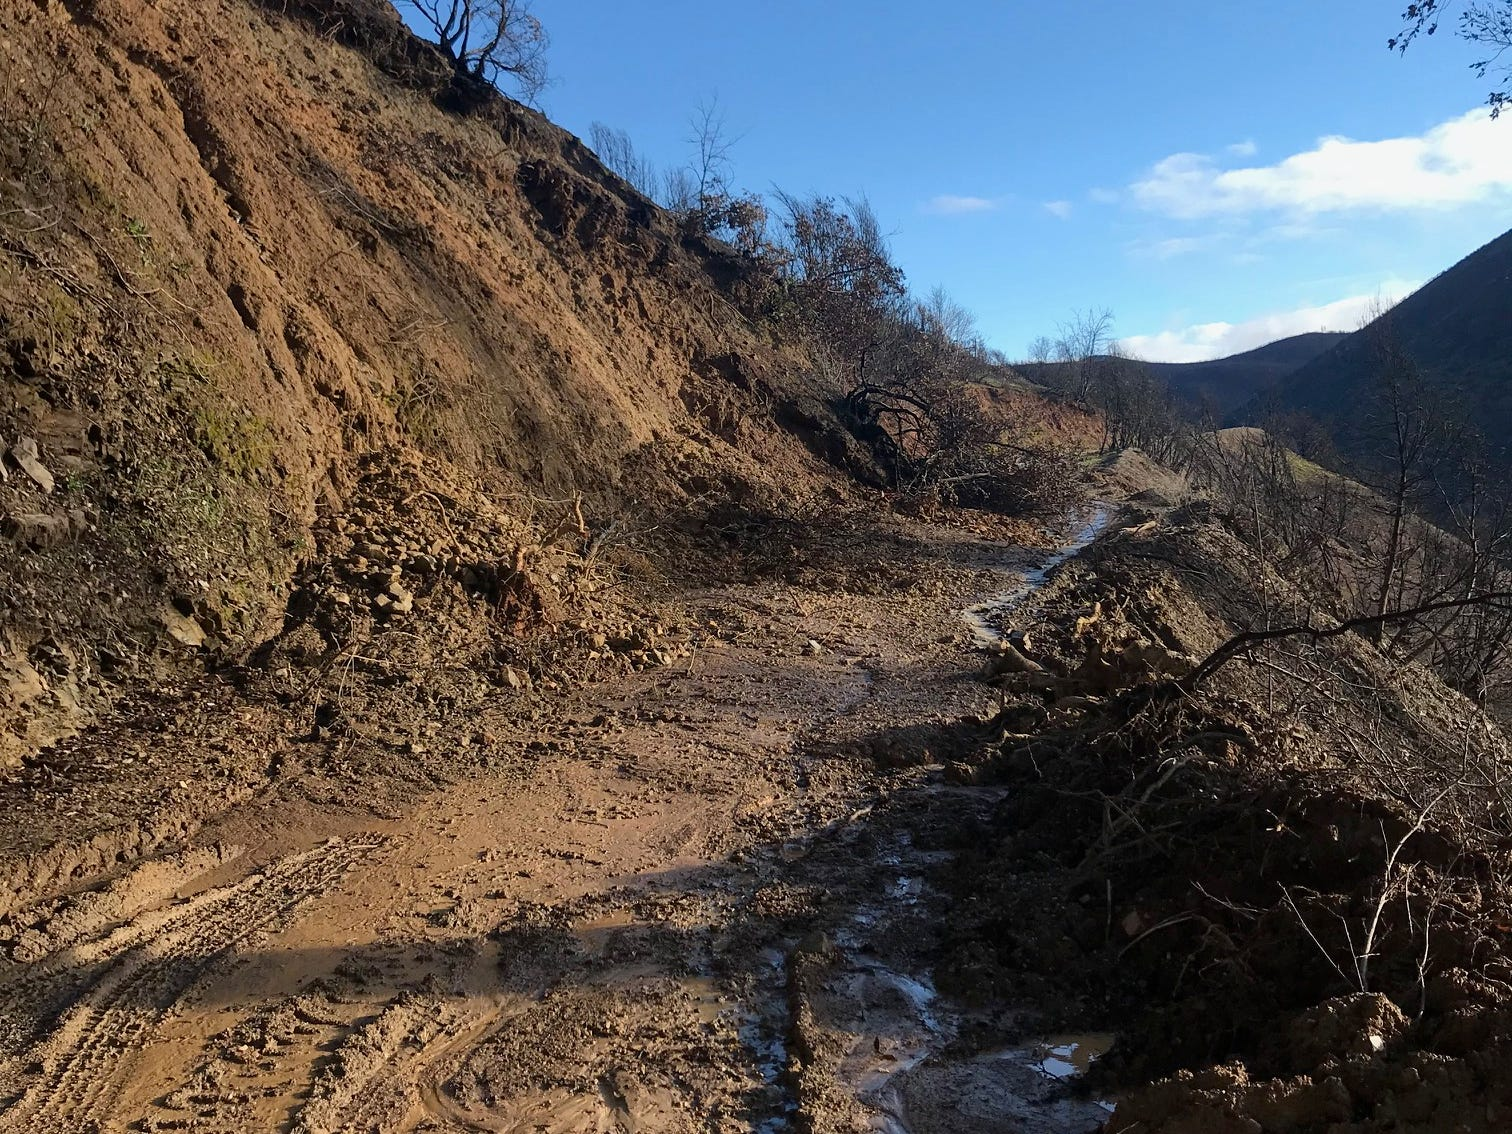 A mudslide closed Tom Green Mine Road near French Gulch on Friday, March 8, 2019.